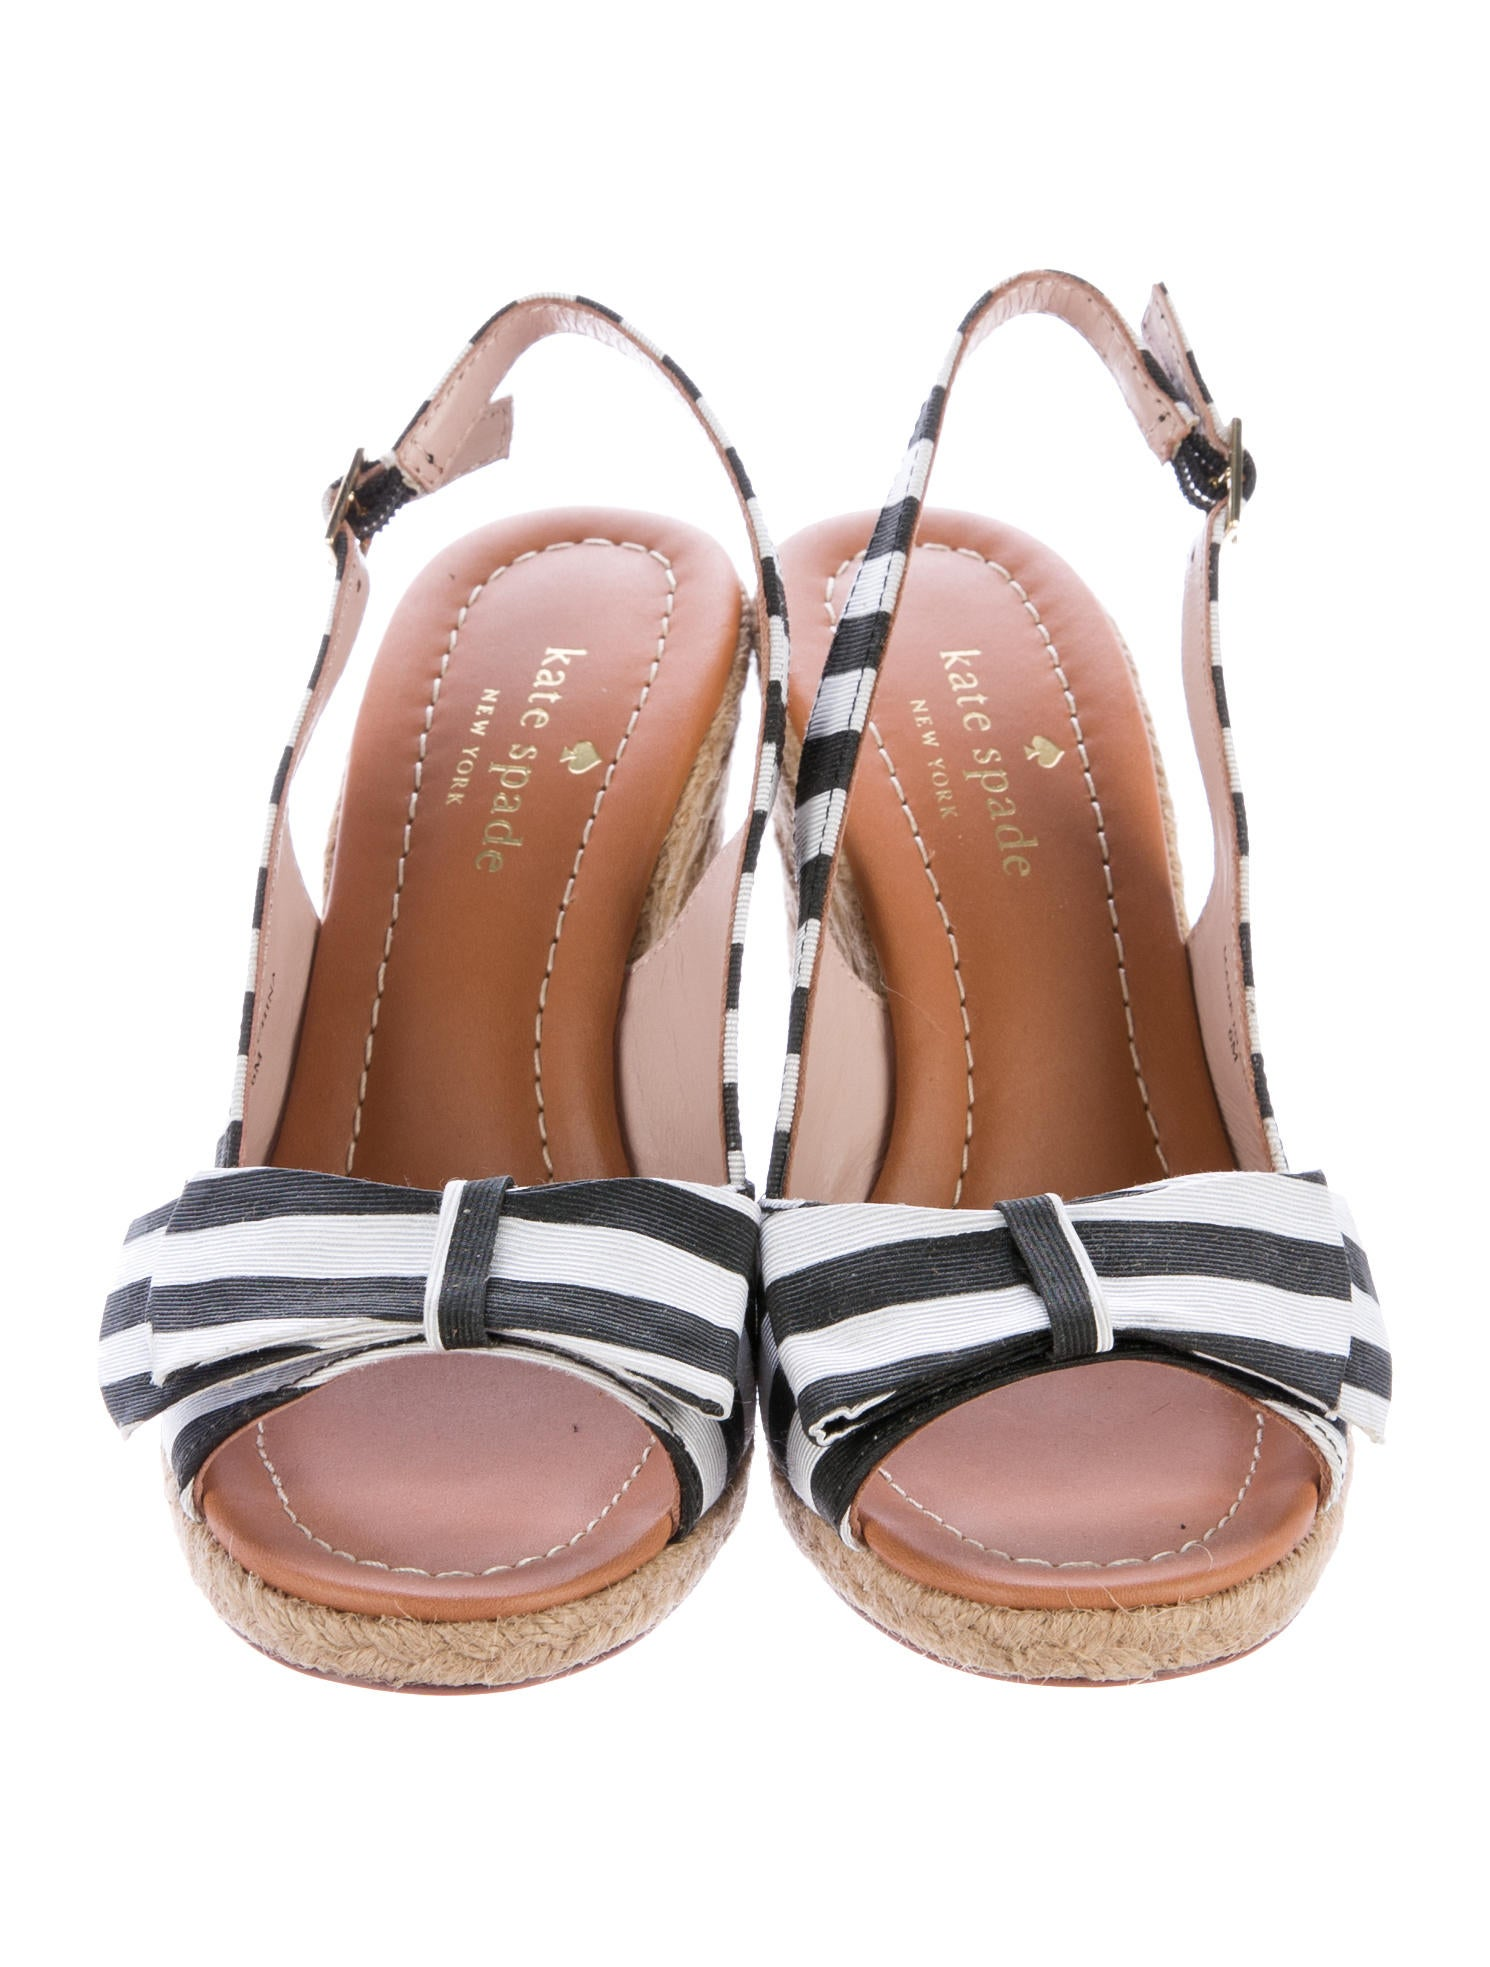 Kate Spade New York Striped Peep Toe Sandal Wedges Shoes  : WKA606203enlarged from www.therealreal.com size 1490 x 1967 jpeg 222kB